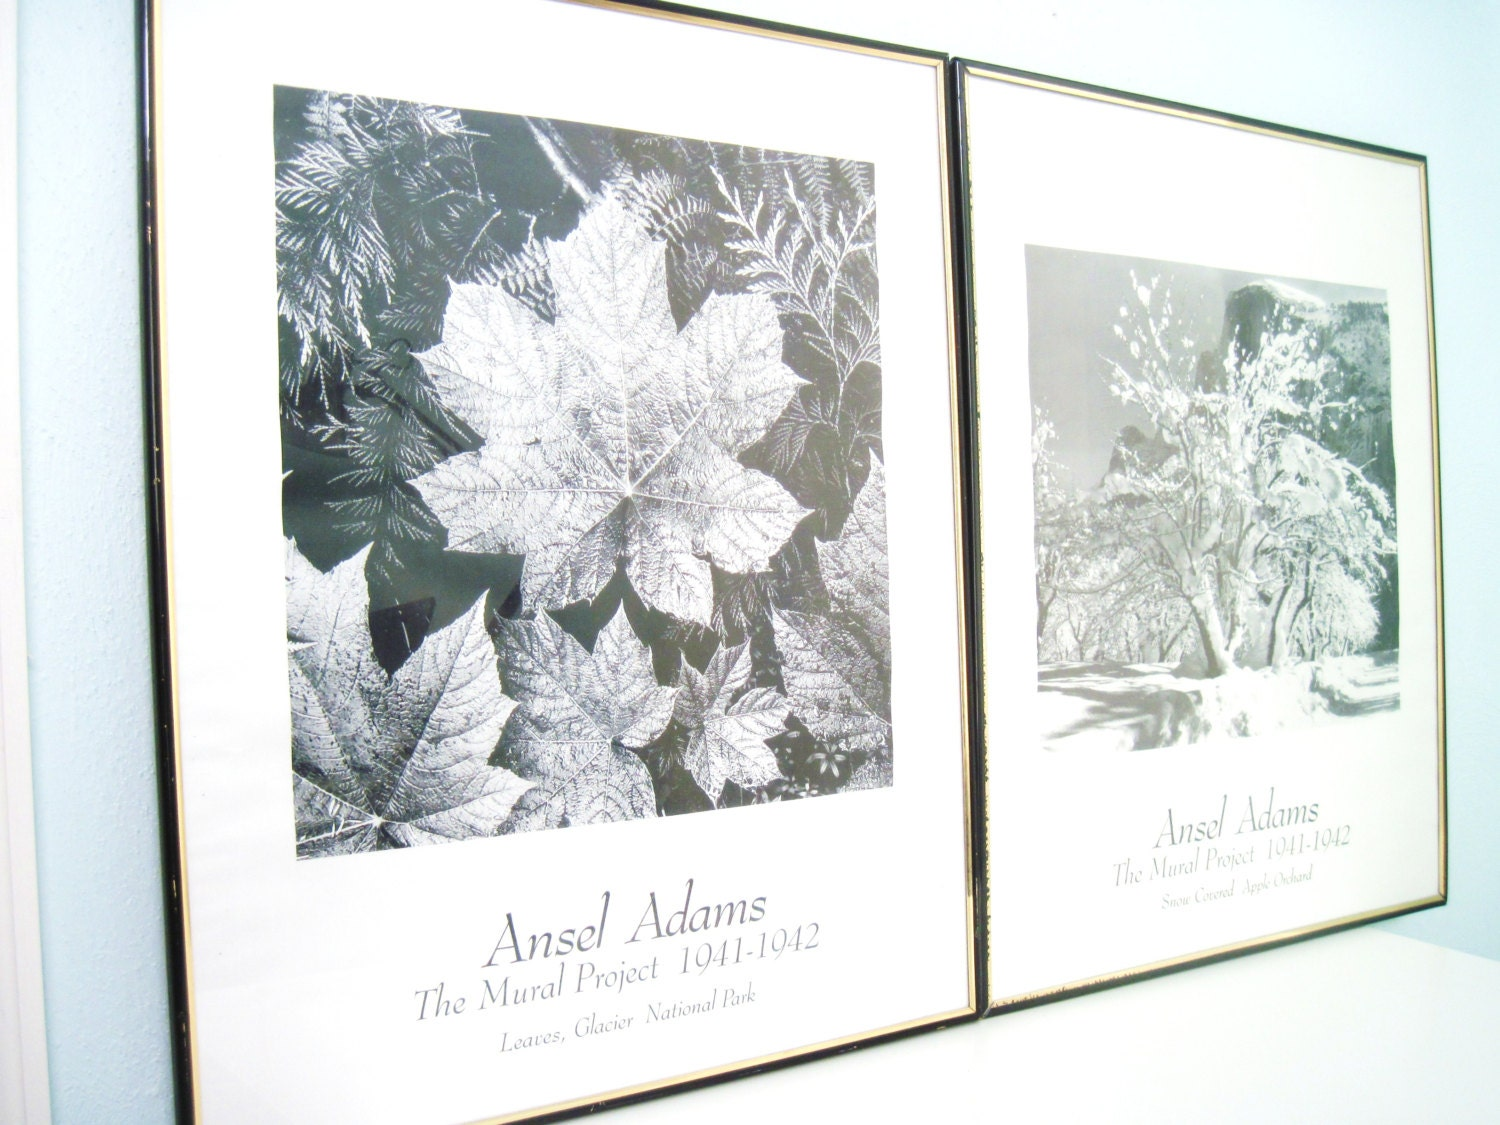 Vintage ansel adams framed photography by planetfriendlygoods for Ansel adams the mural project posters